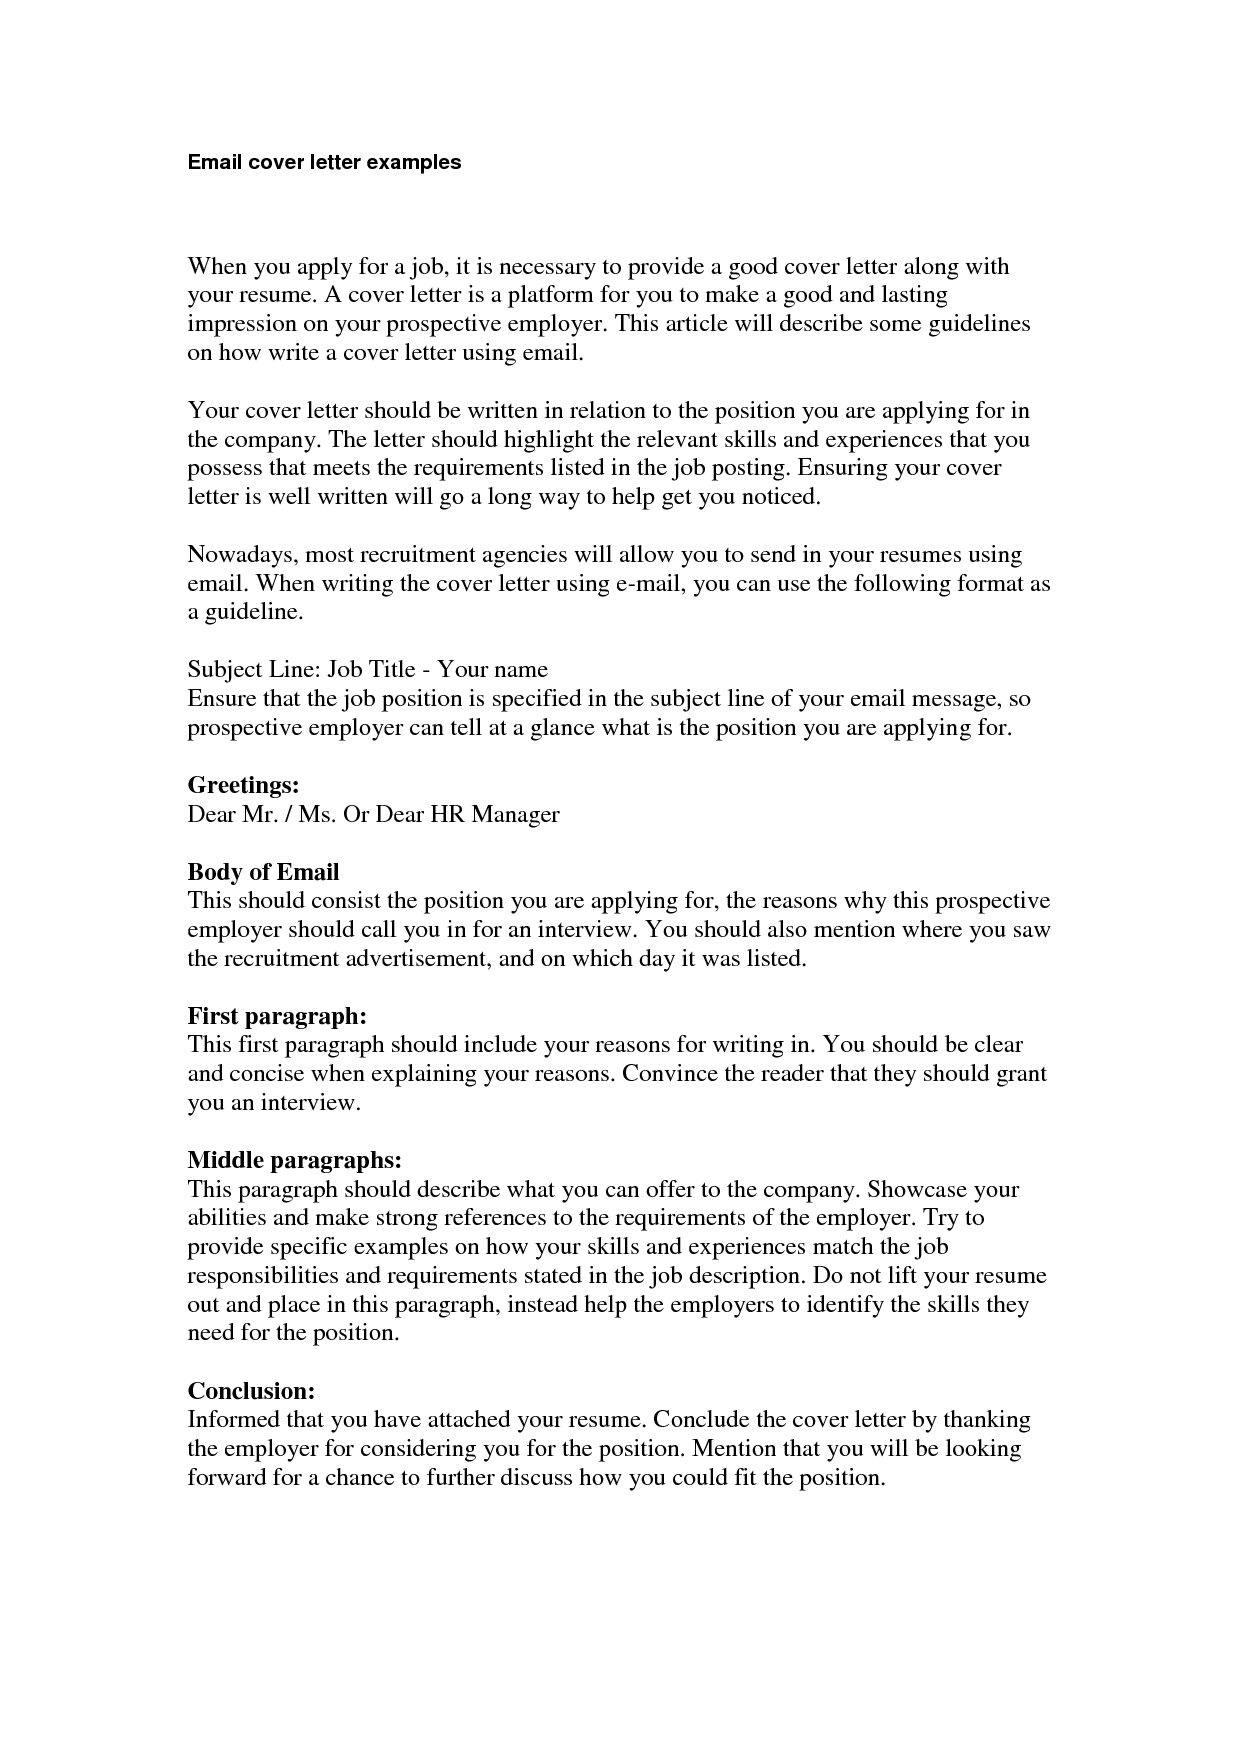 Sample Email To Send Resume Cover Letter For Resume Email Profesional Sample Titled Send